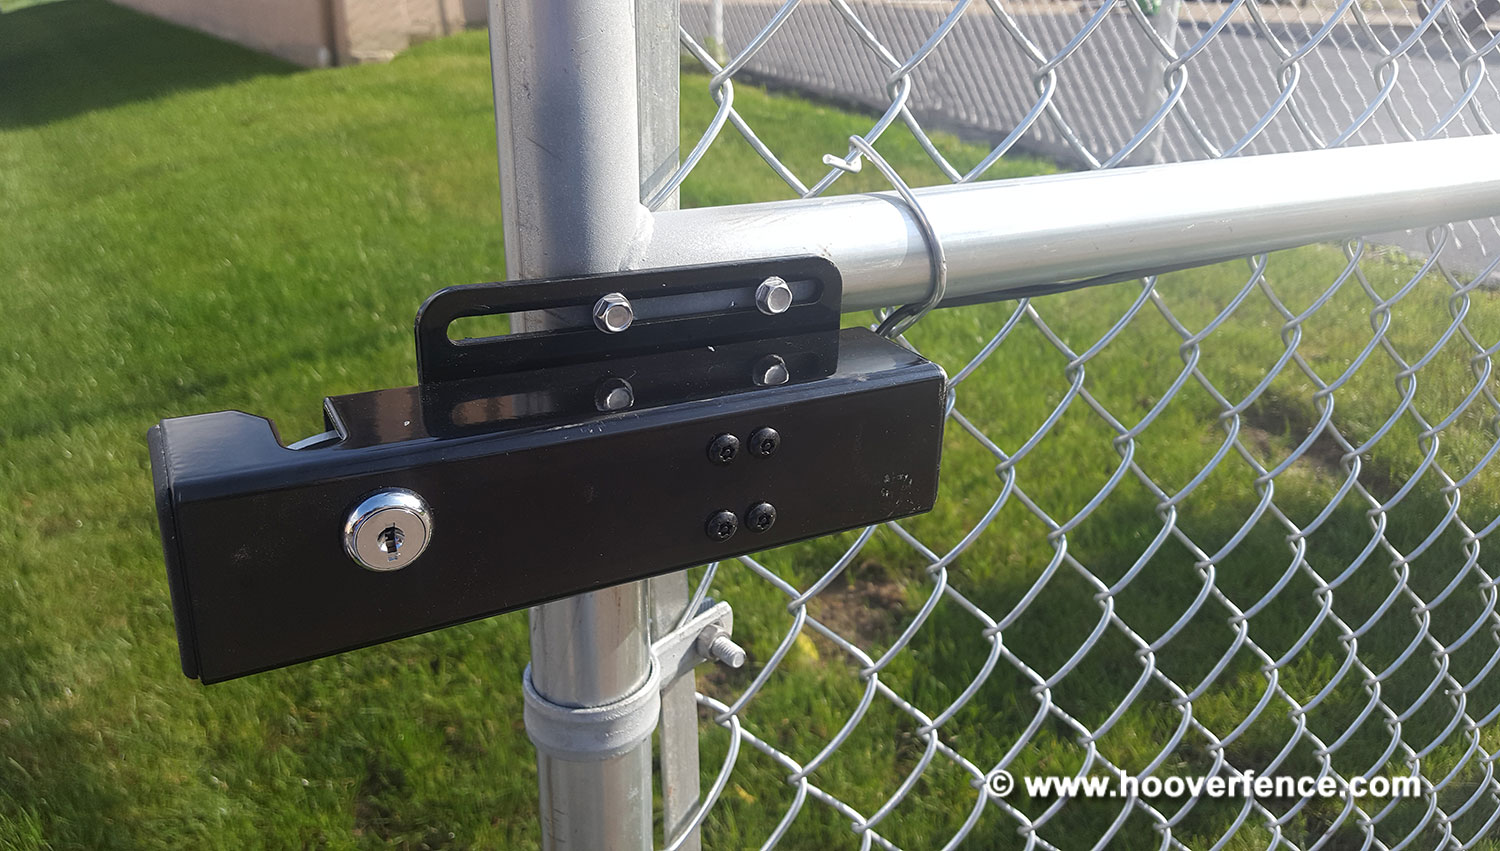 HFC Install - Commercial Chain Link Double Gate with Gate Openers